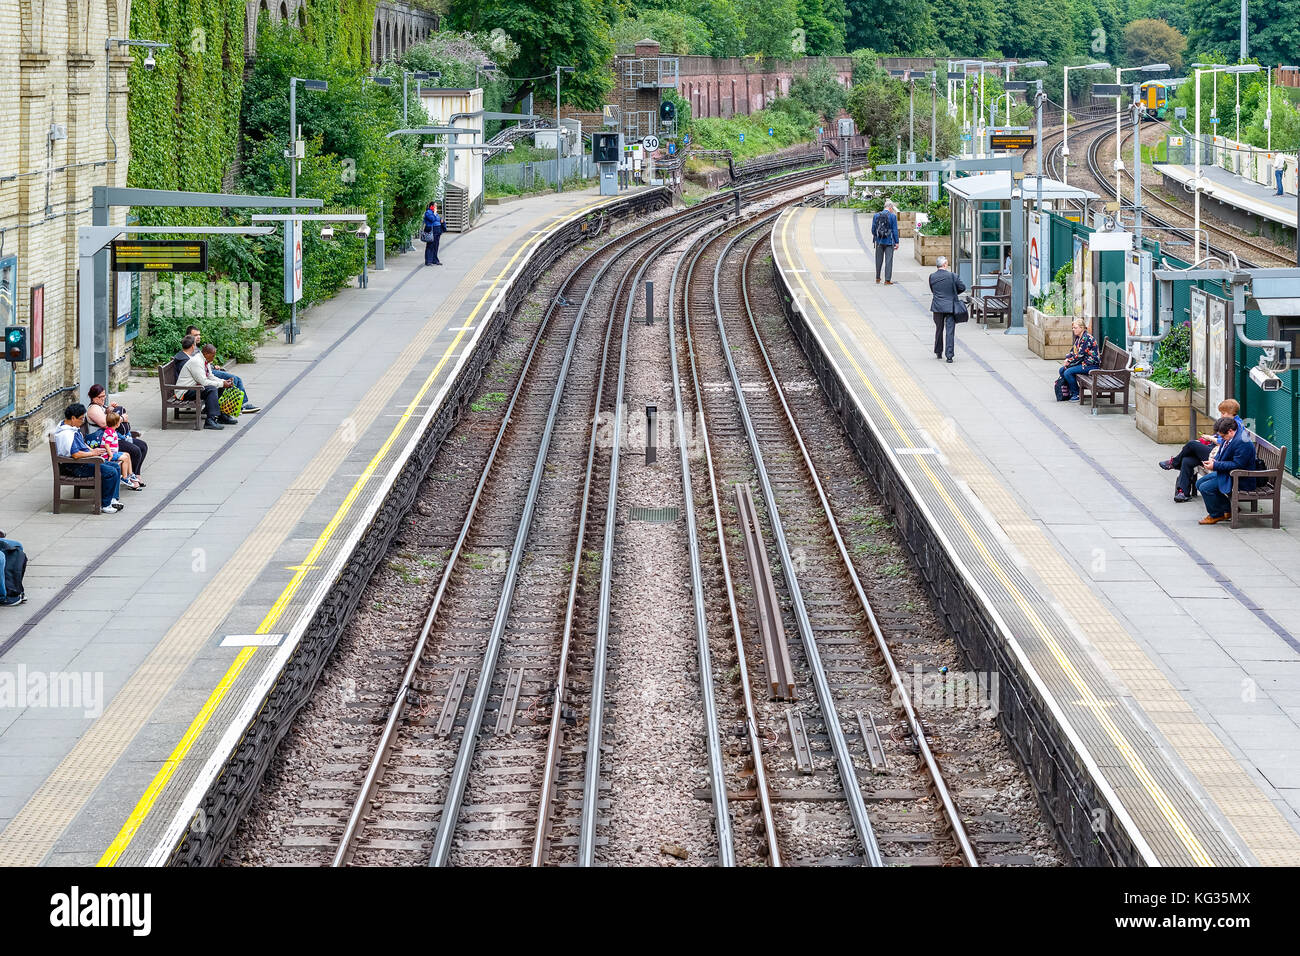 London, UK - October 23, 2017 - West Brompton underground station platforms, with commuters waiting on platforms - Stock Image